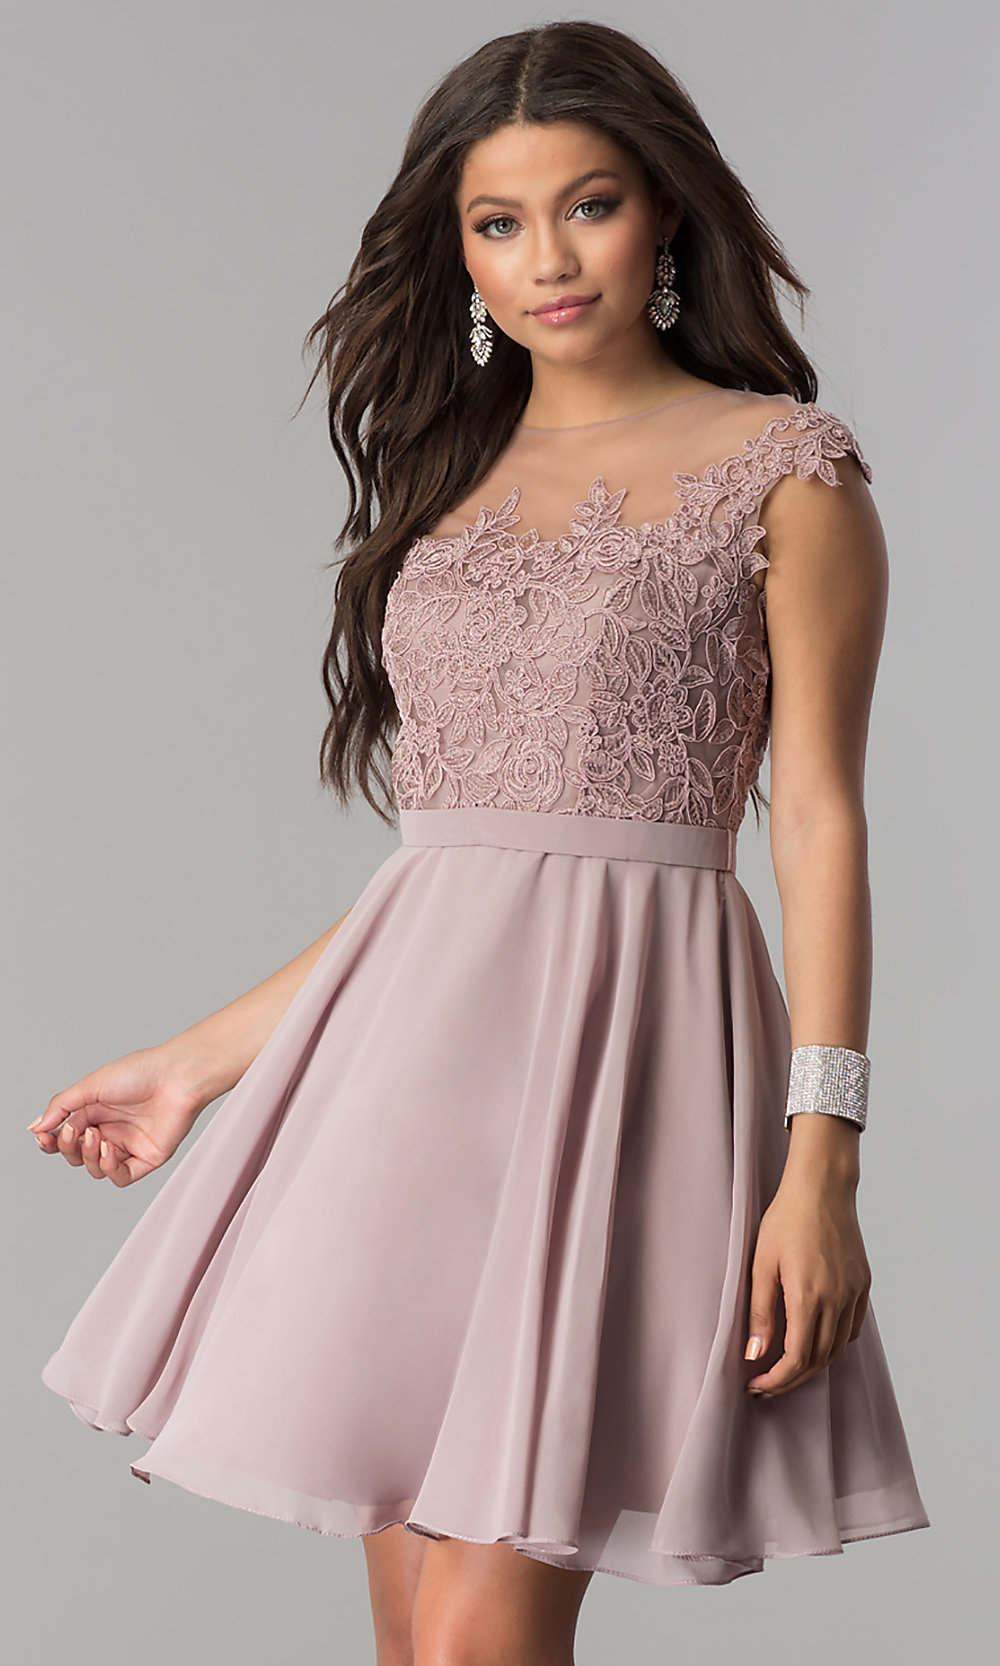 Lace Bodice Short Chiffon Party Dress Promgirl